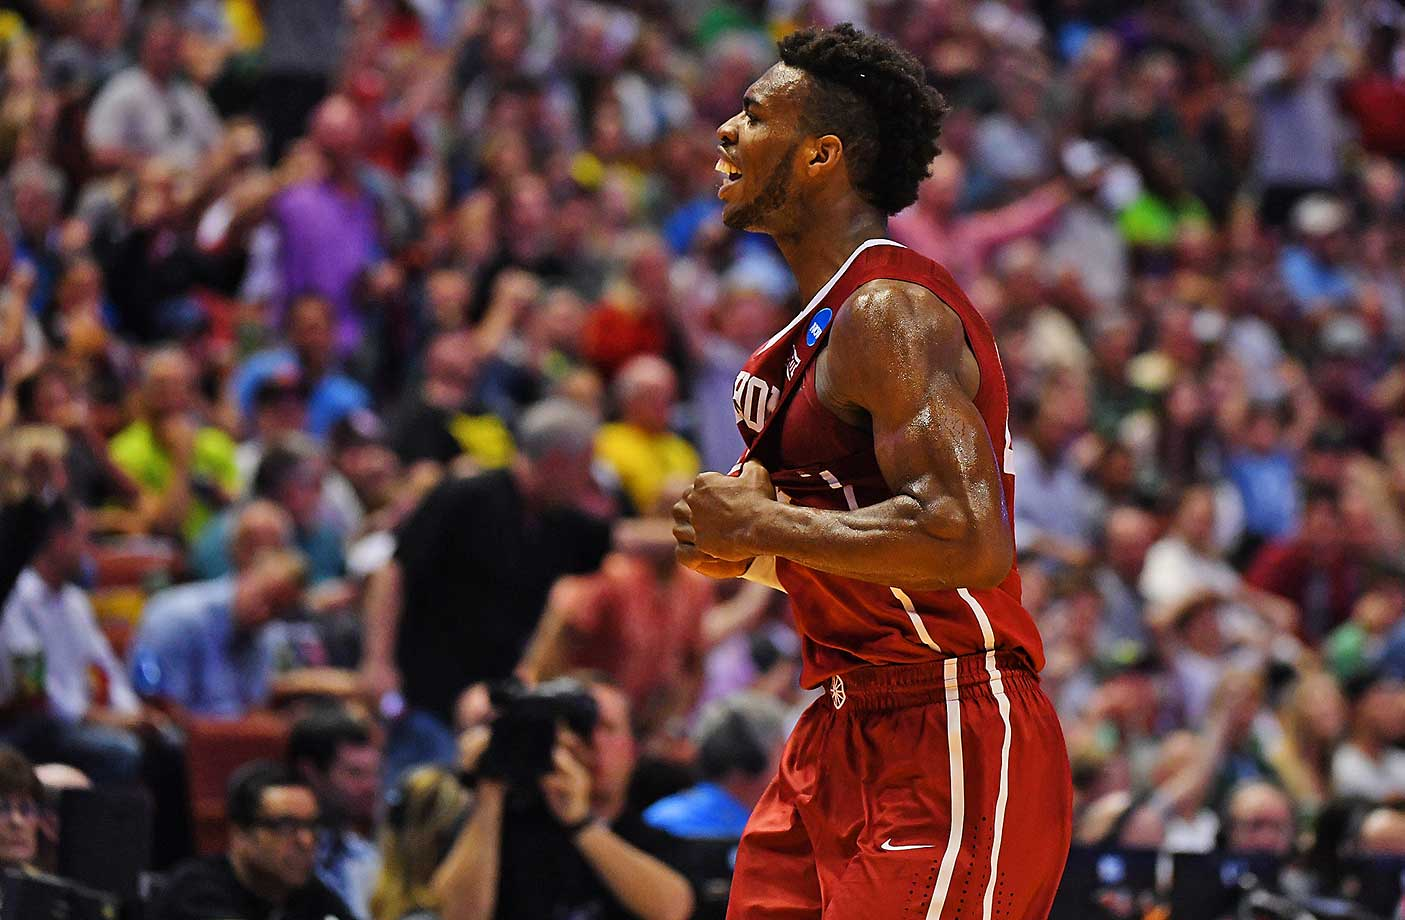 Buddy Hield's 37 points were two more than the rest of the Oklahoma starters combined.